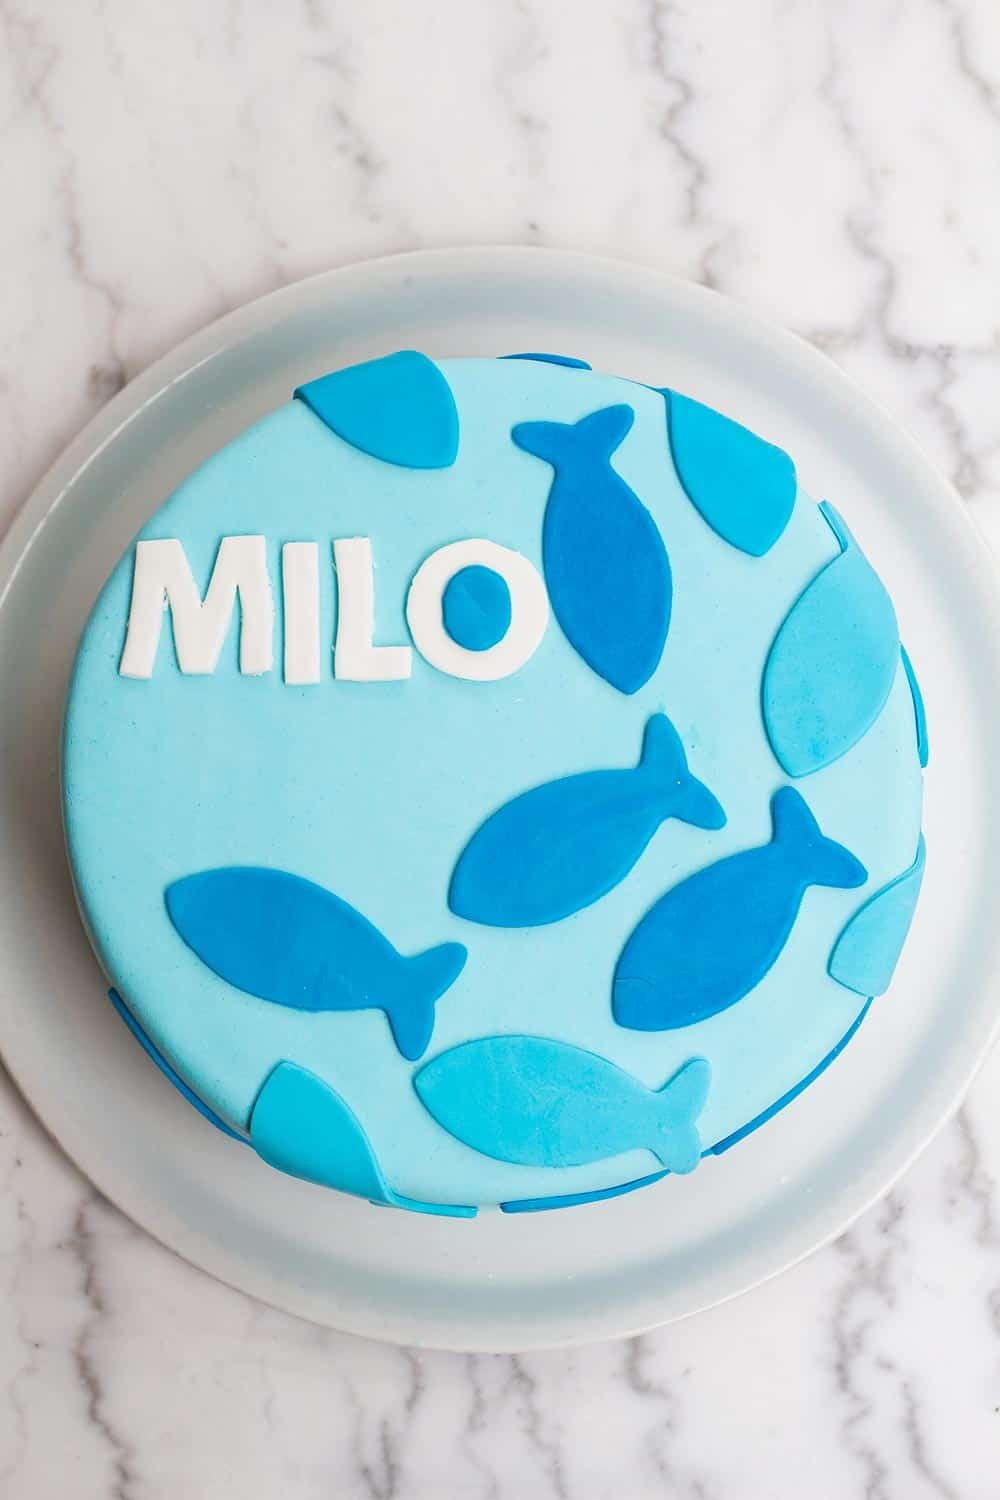 A blue cake decorated with blue frosting fish and the name Milo.